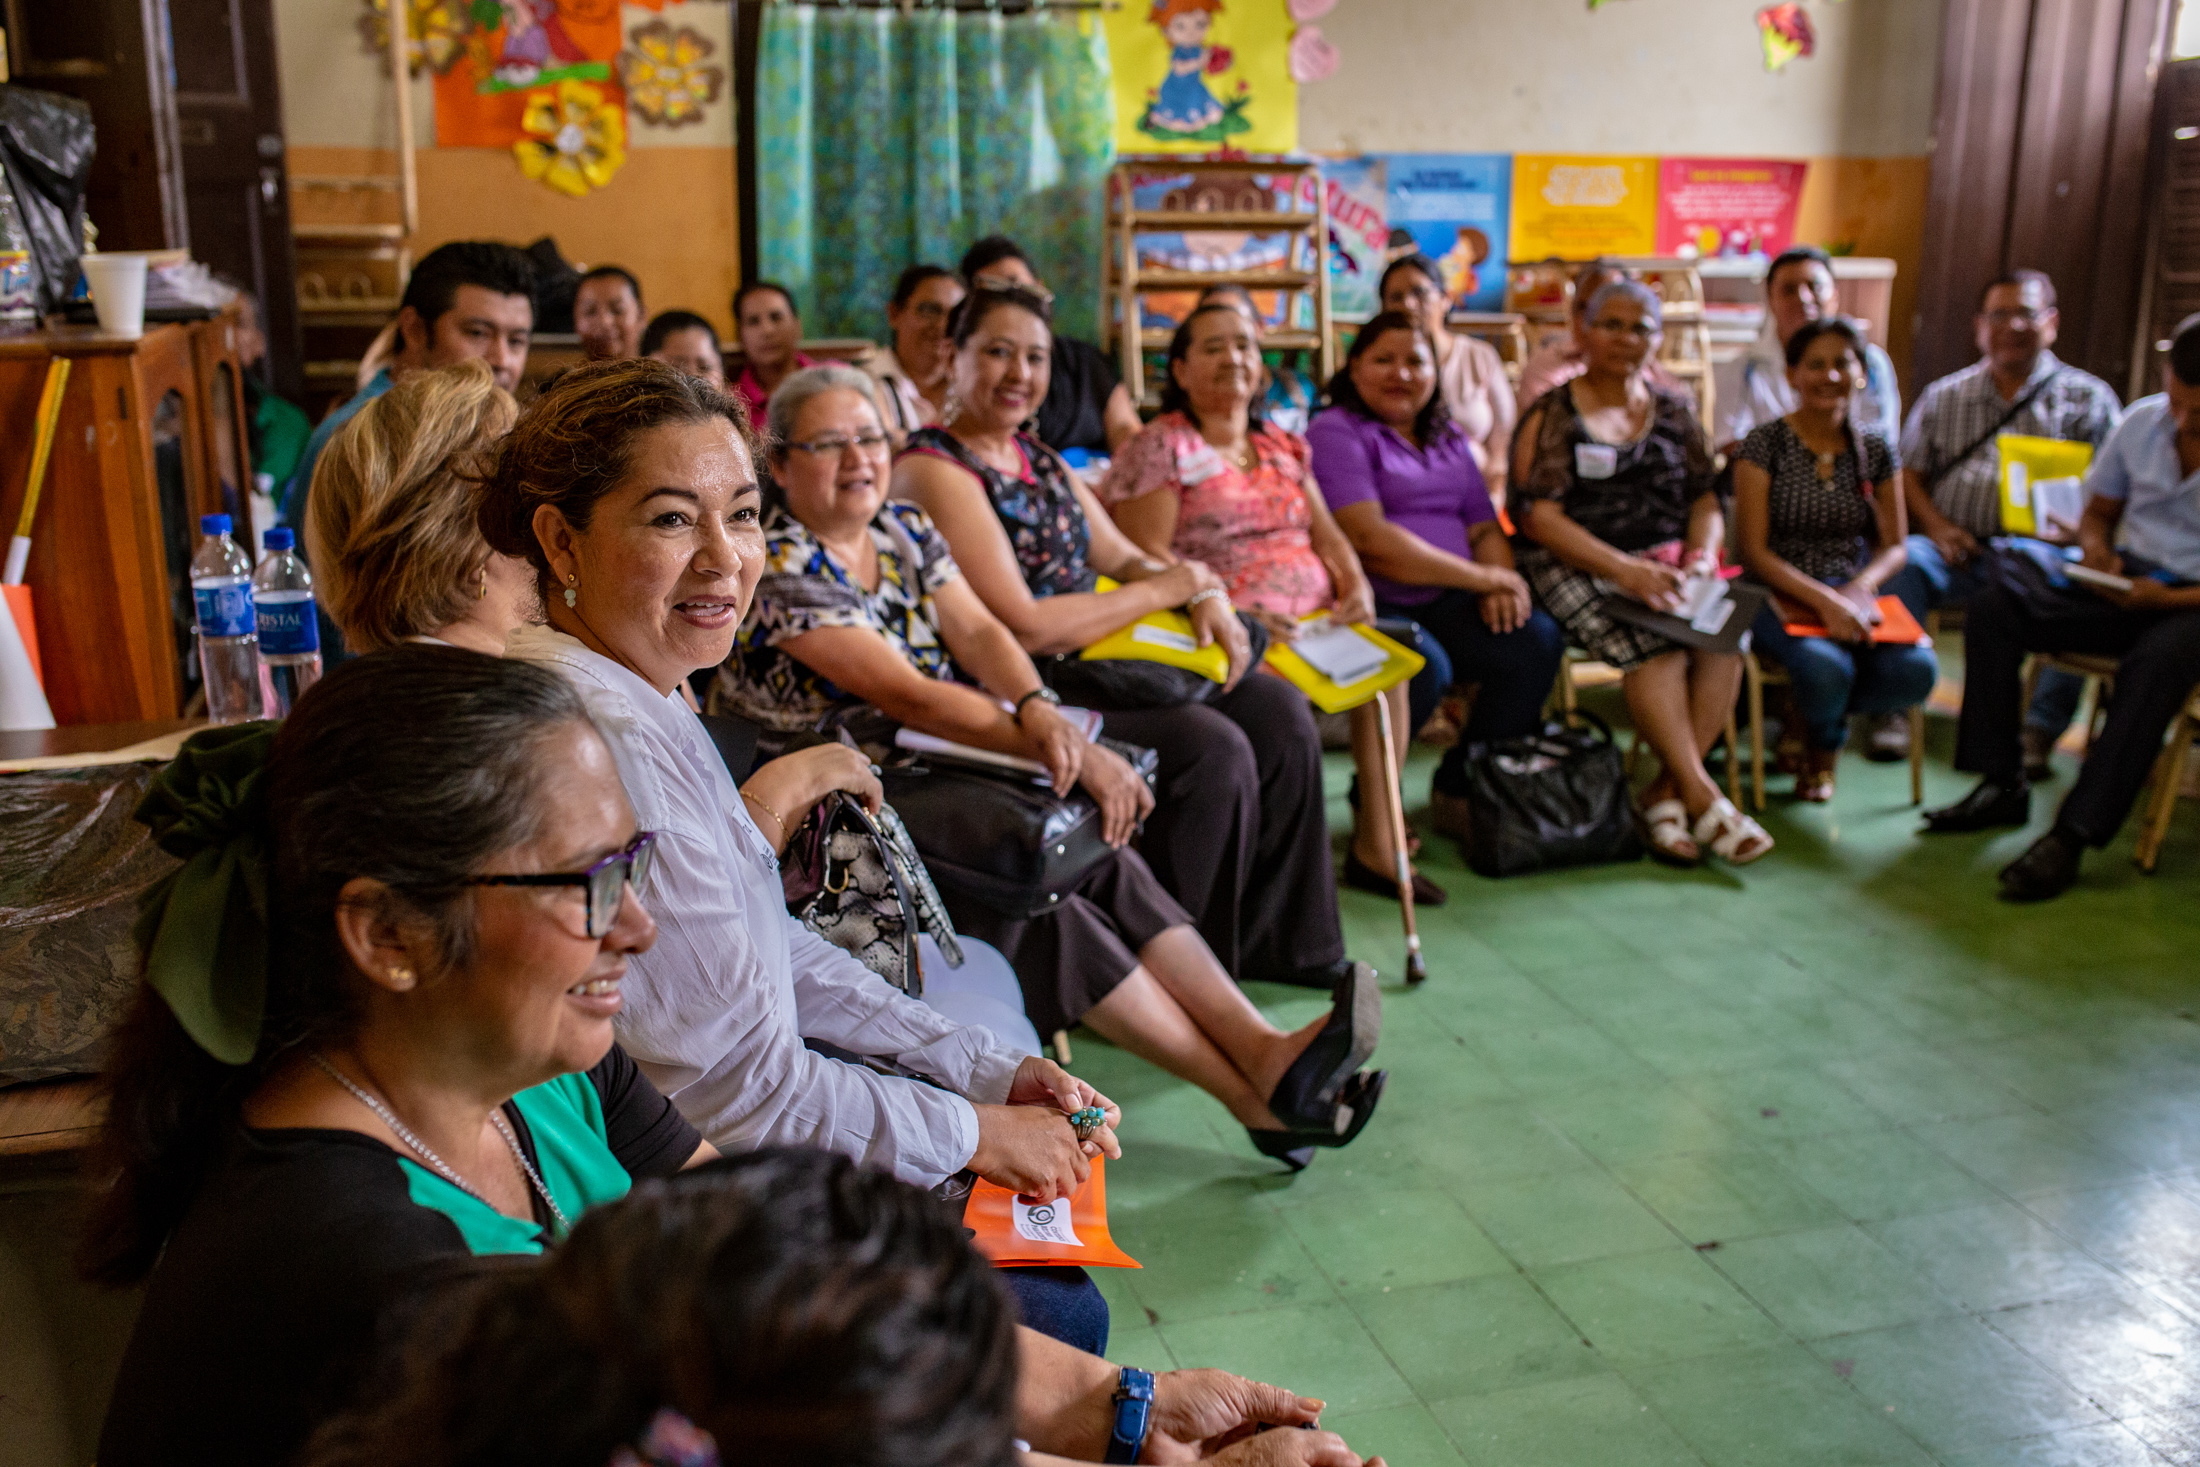 Our teachers' conferences in El Salvador just keep growing. At the most recent one, 150 teachers were present and gained so much they said they didn't want to leave.